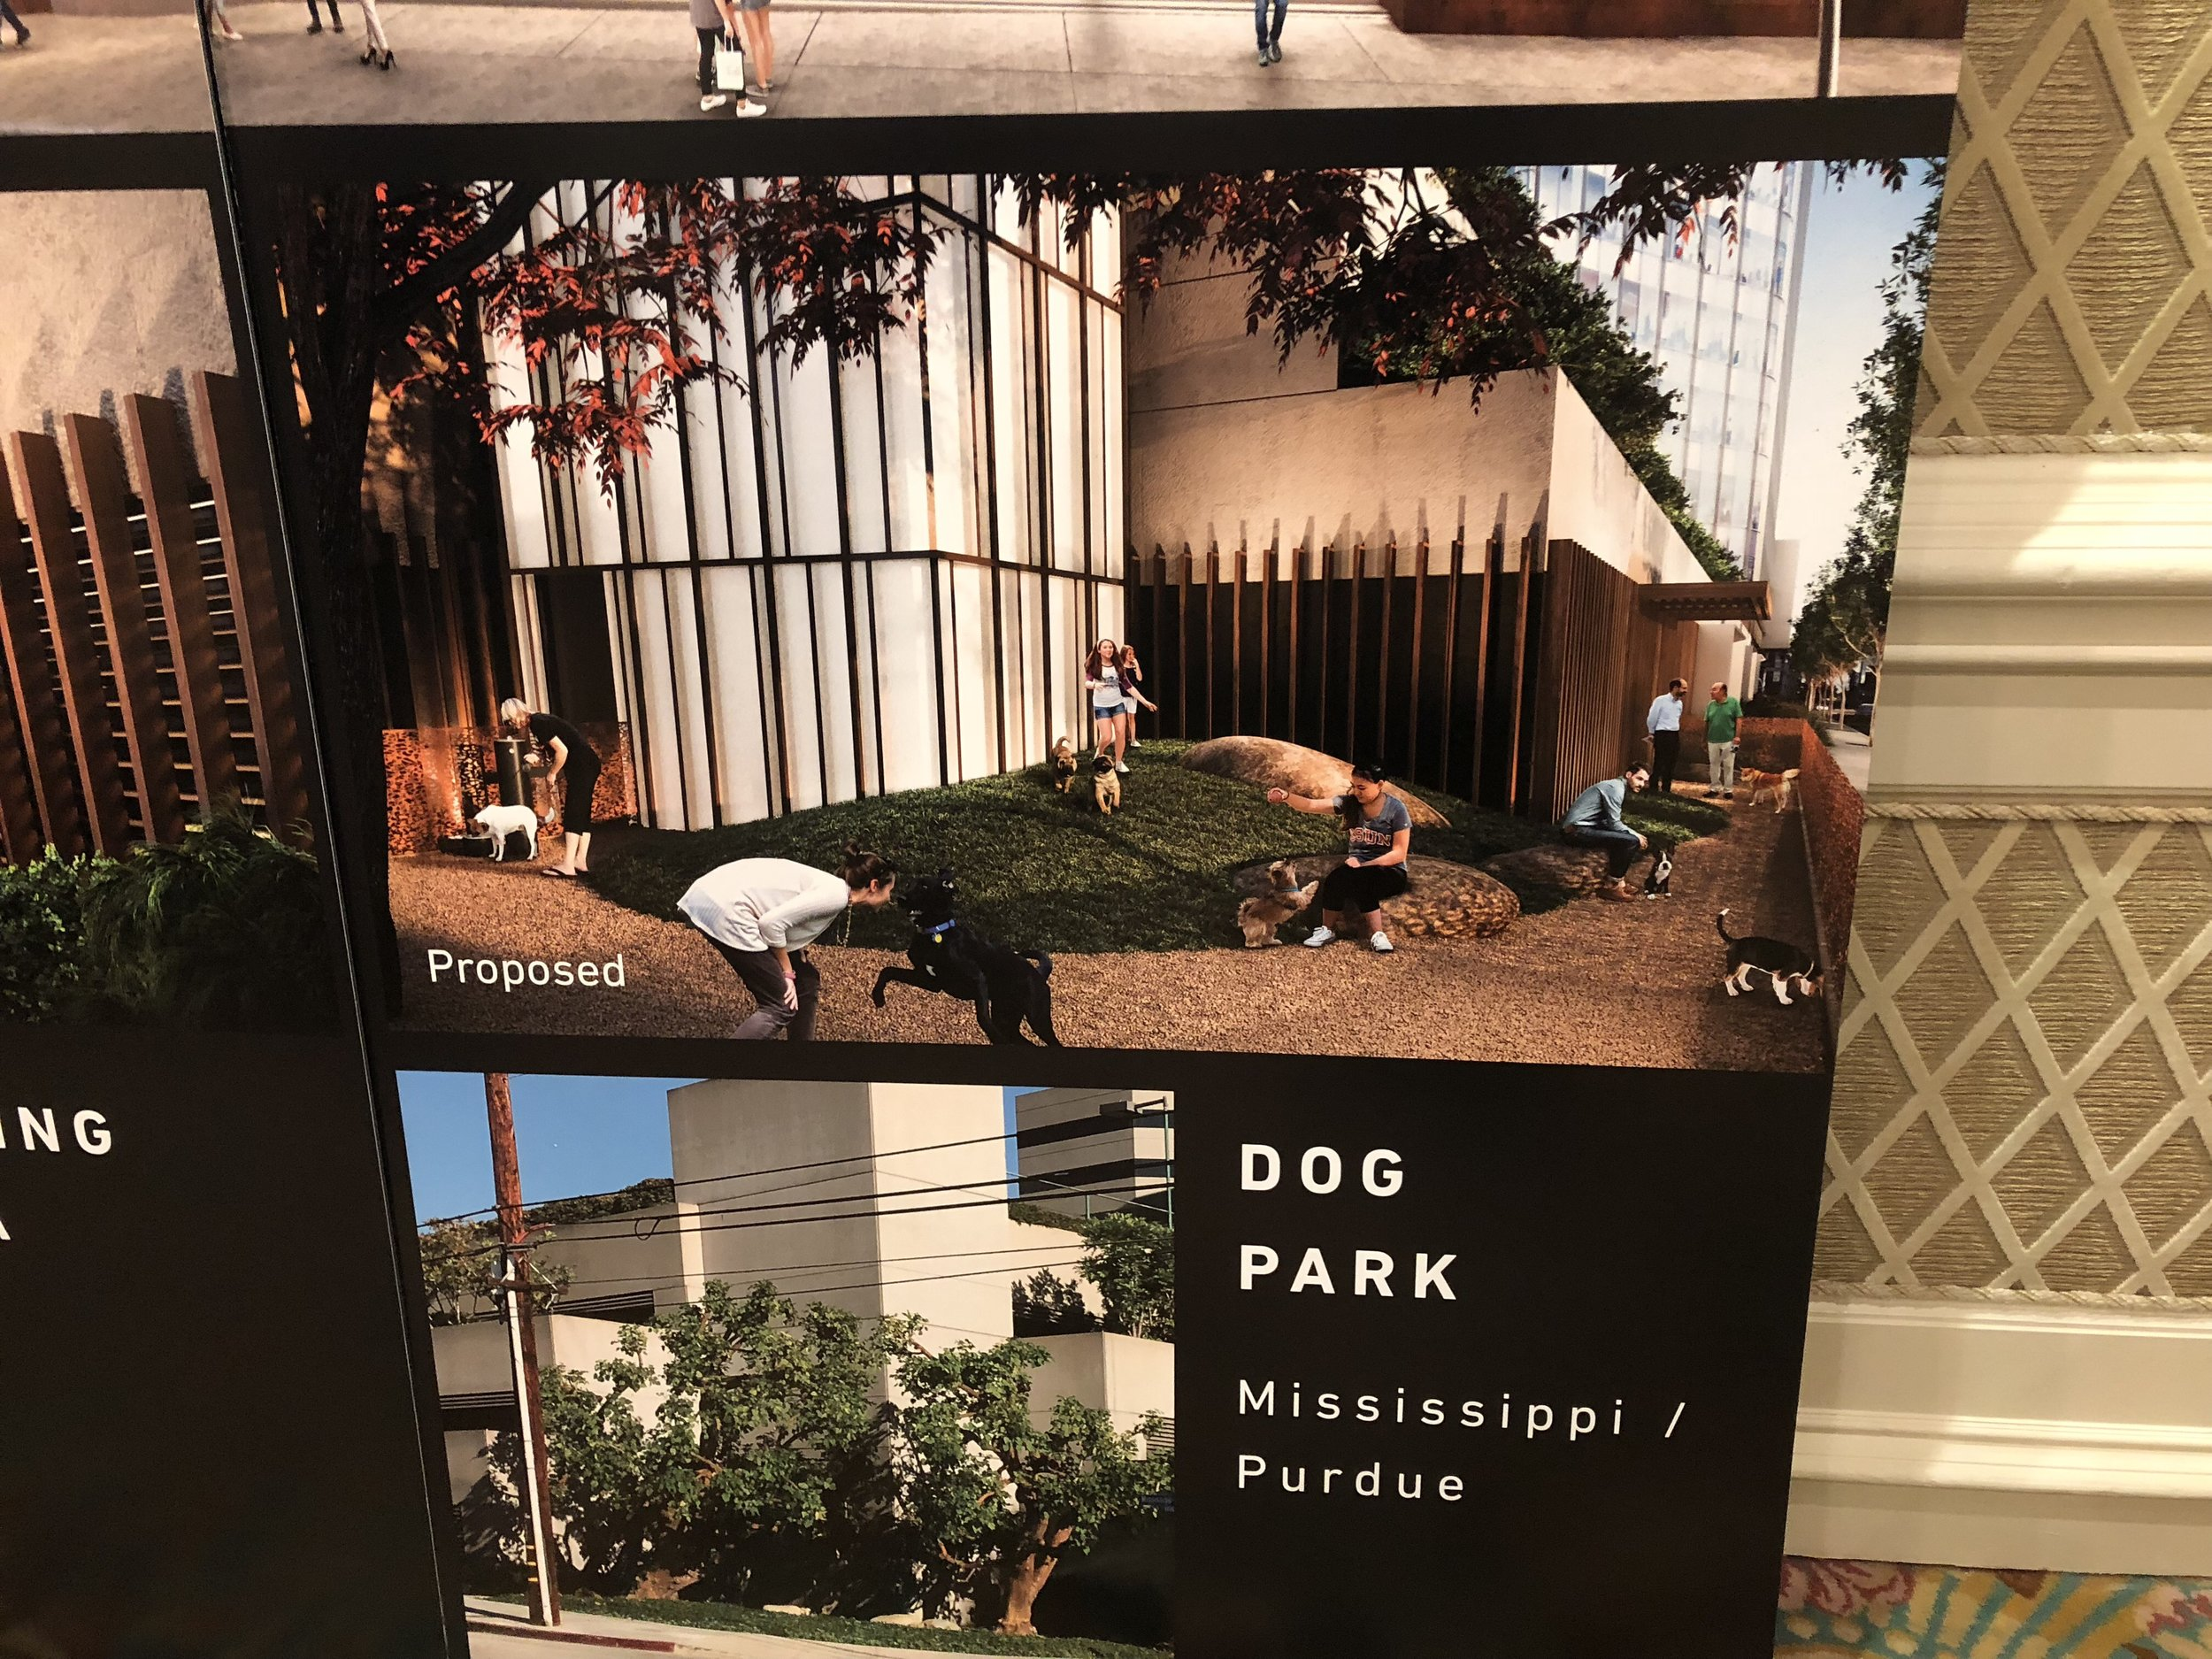 A dog park is a popular concept on the North West corner.